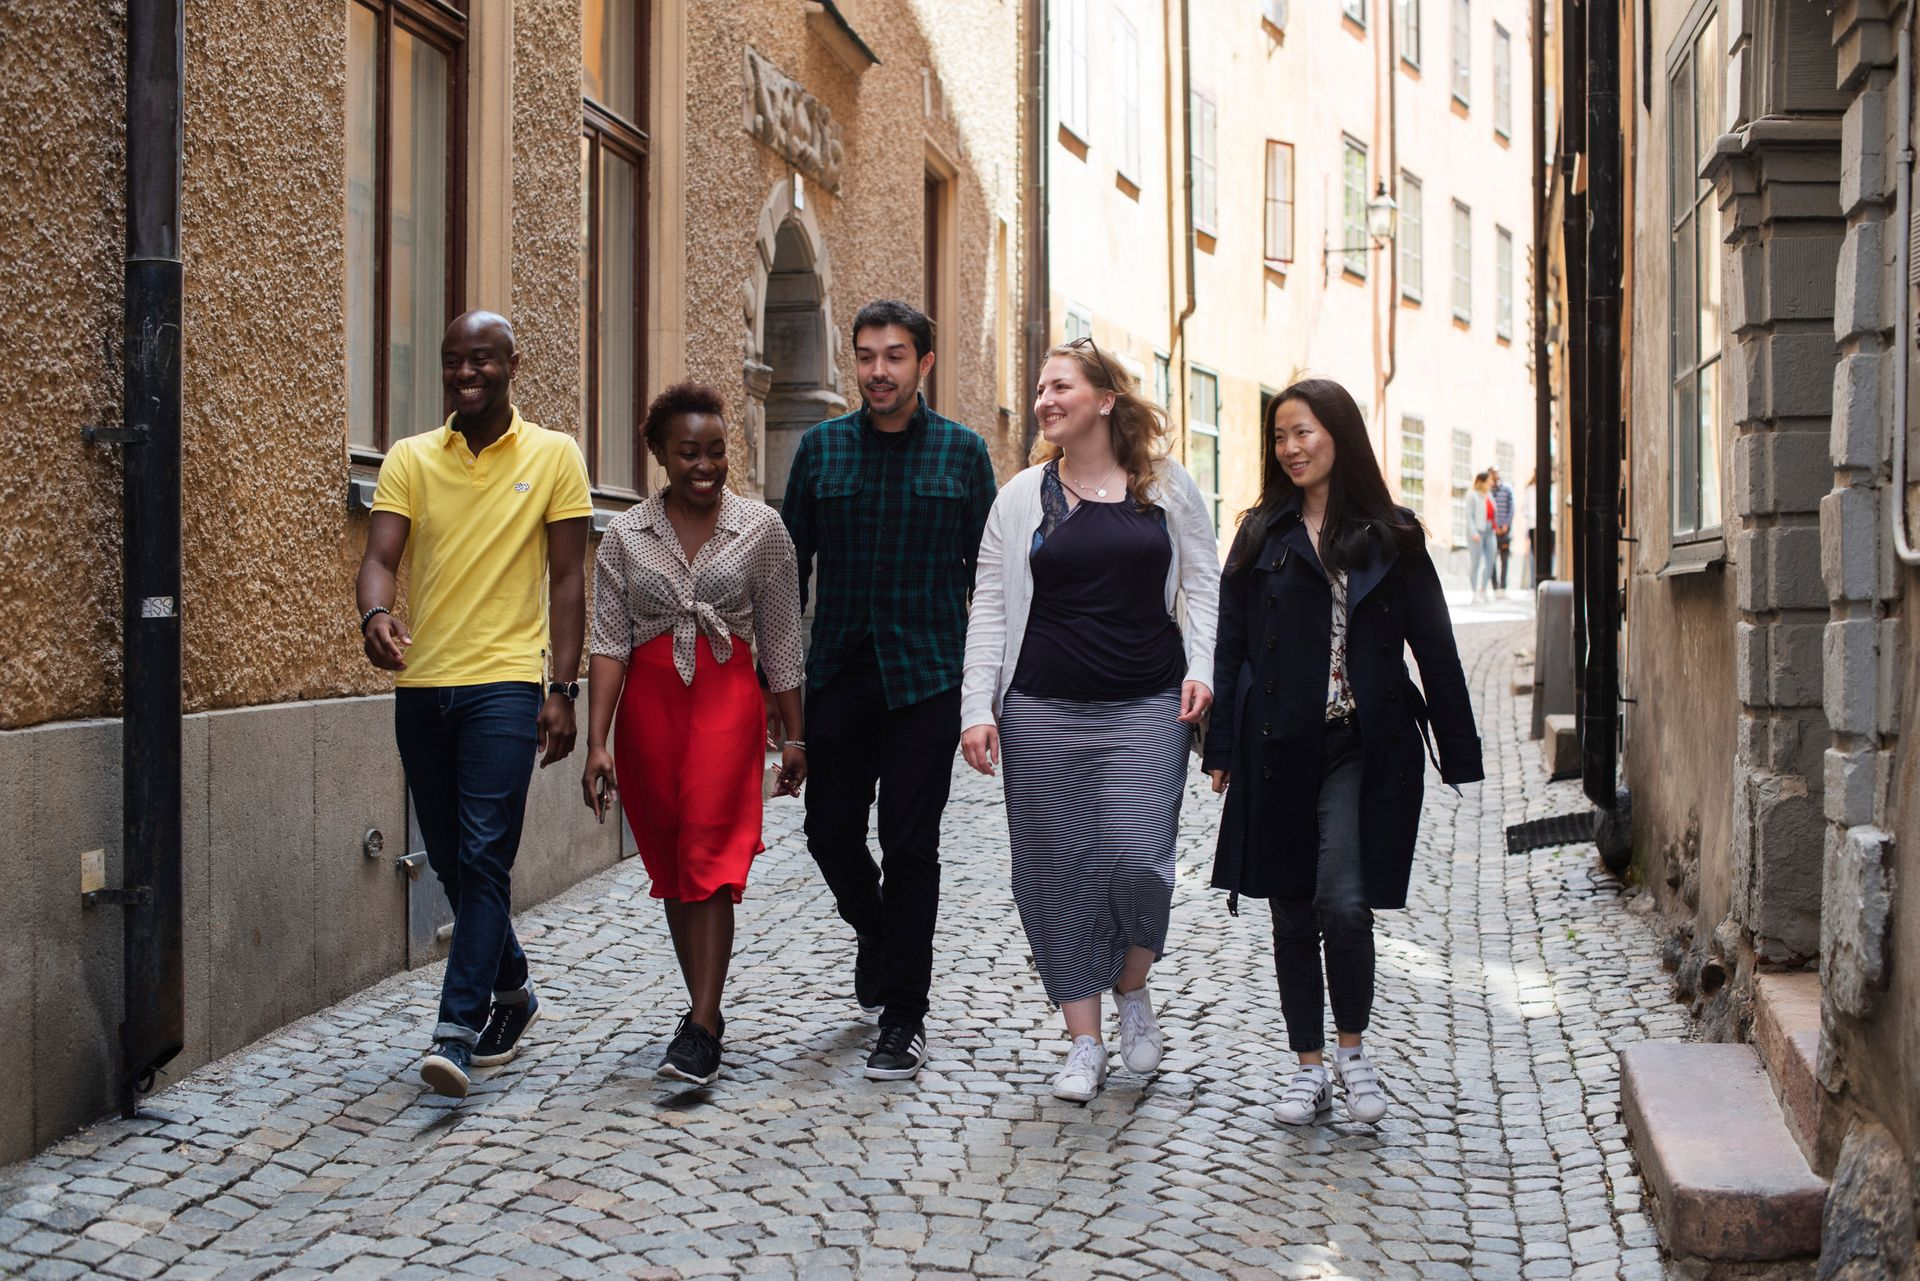 A group of friends are walking down a narrow cobbled street, smiling.